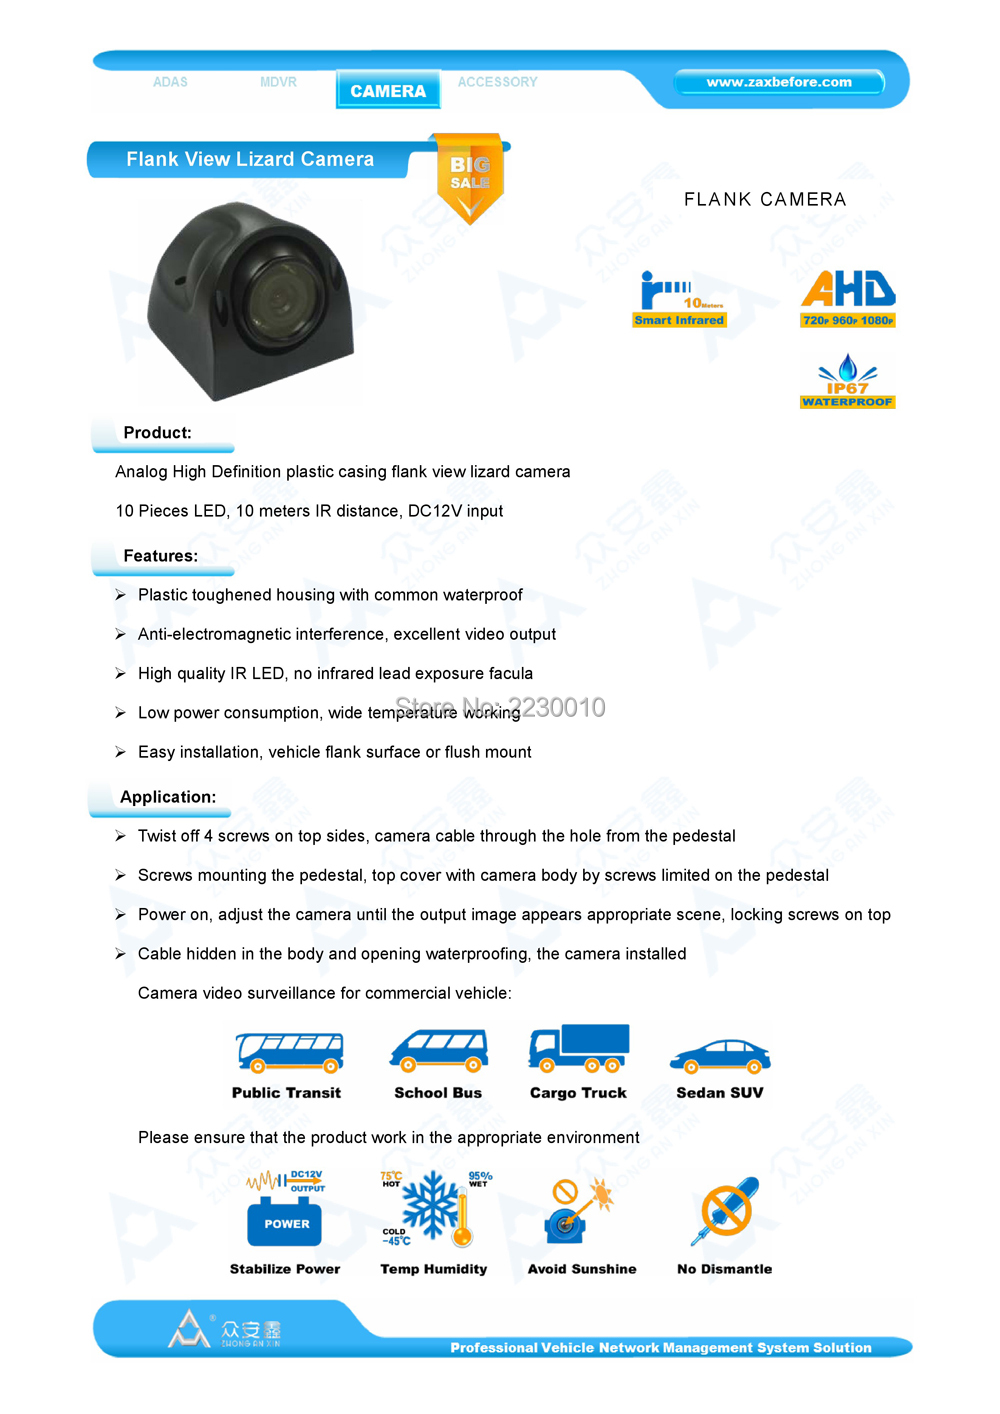 1080P Full HD Weatherproof IP67 Infrared night vision 10 leds Mini Flank View vehicle Camera Factory Outlet OEM ODM